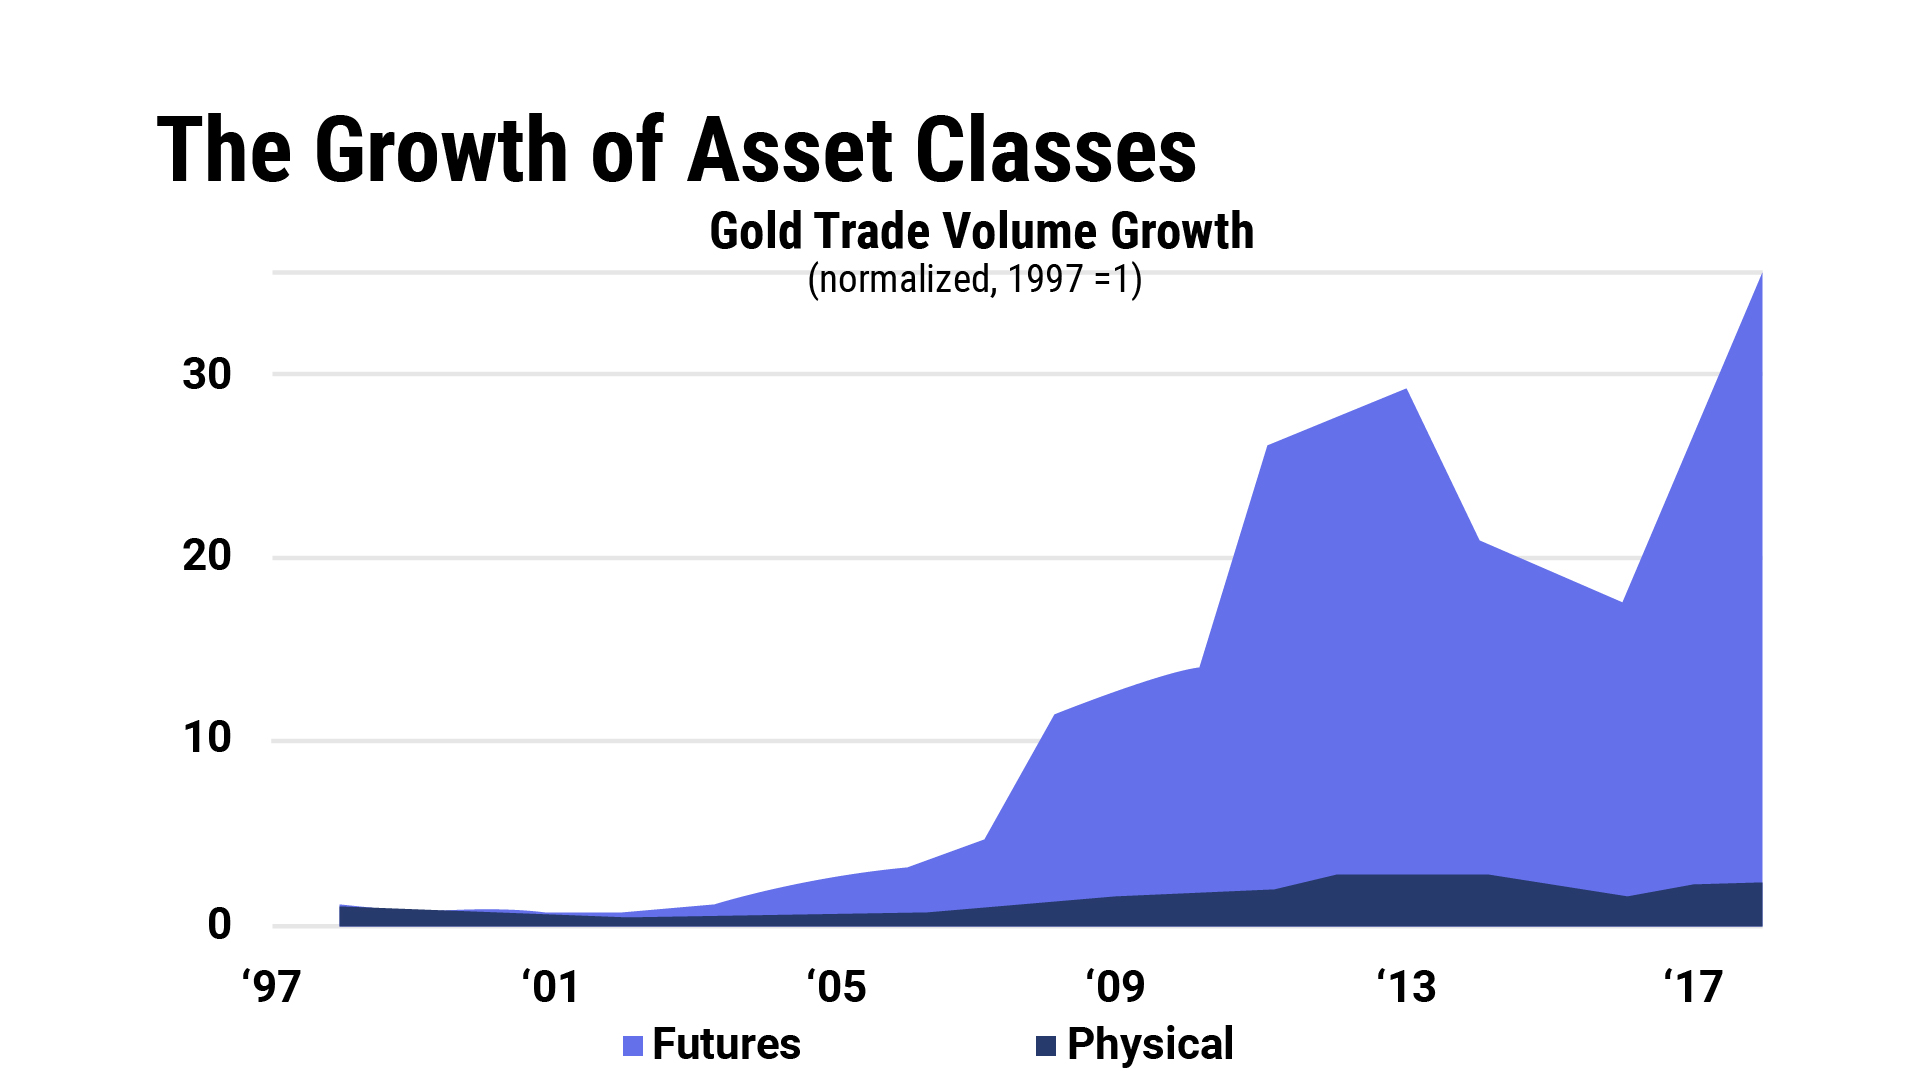 The Growth of Asset Classes